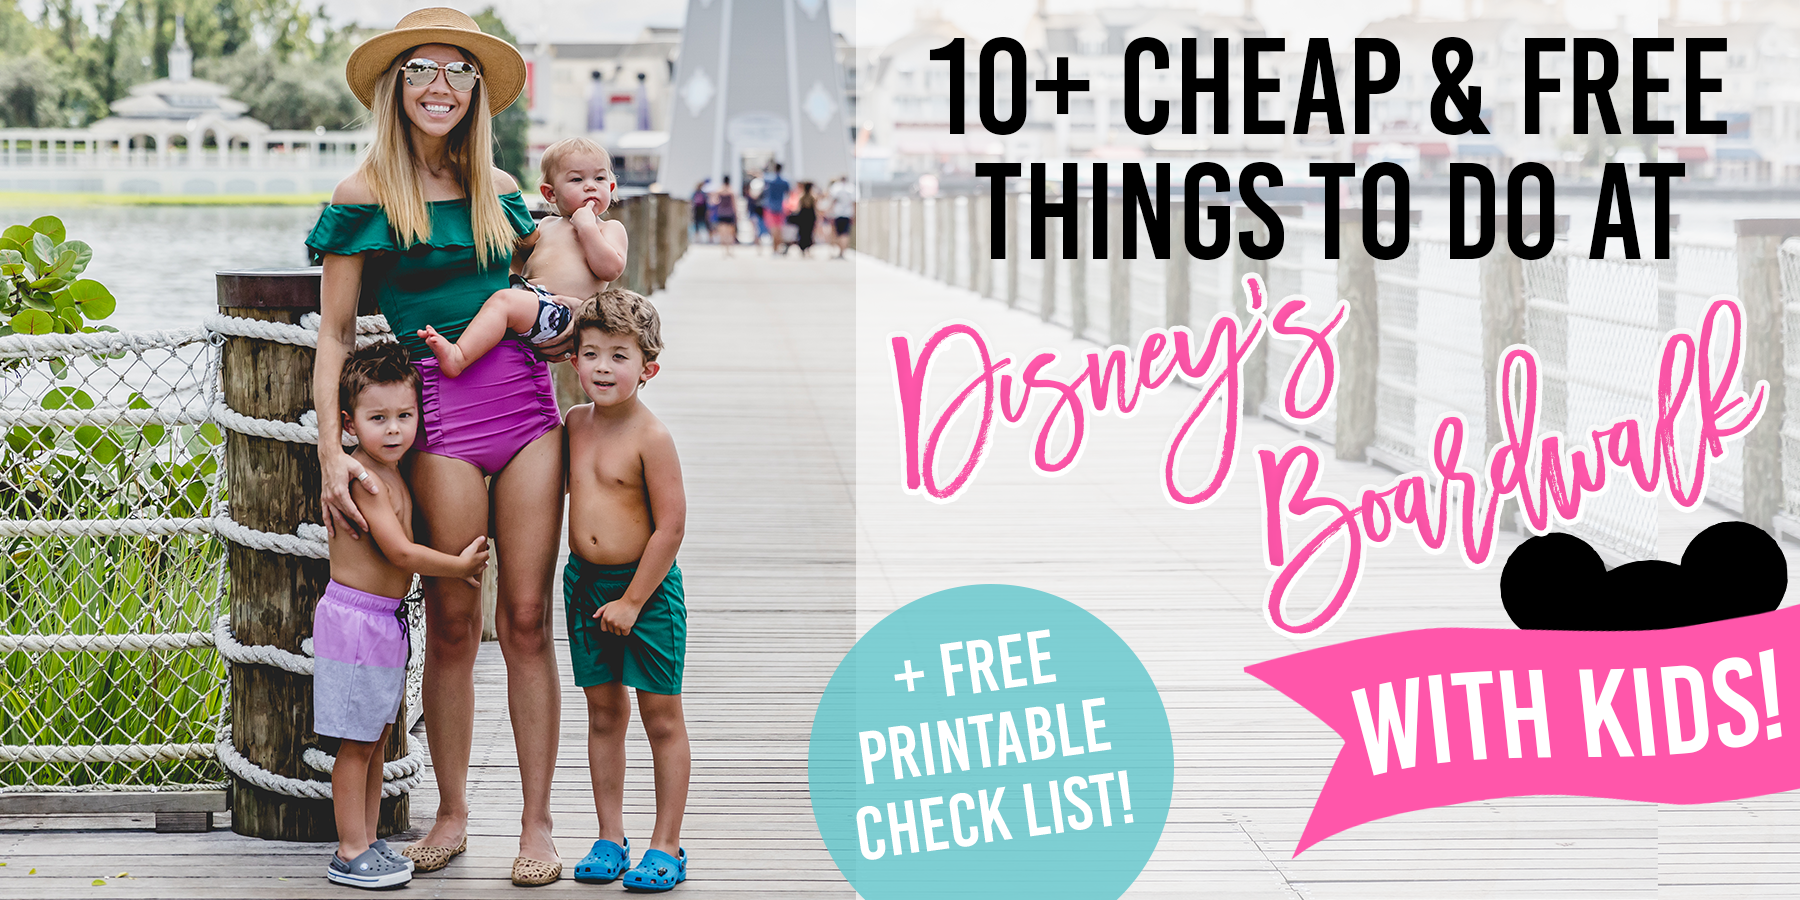 10+ Cheap or FREE Things To Do At Disney Boardwalk With Kids! | + FREE PRINTABLE CHECK LIST!!